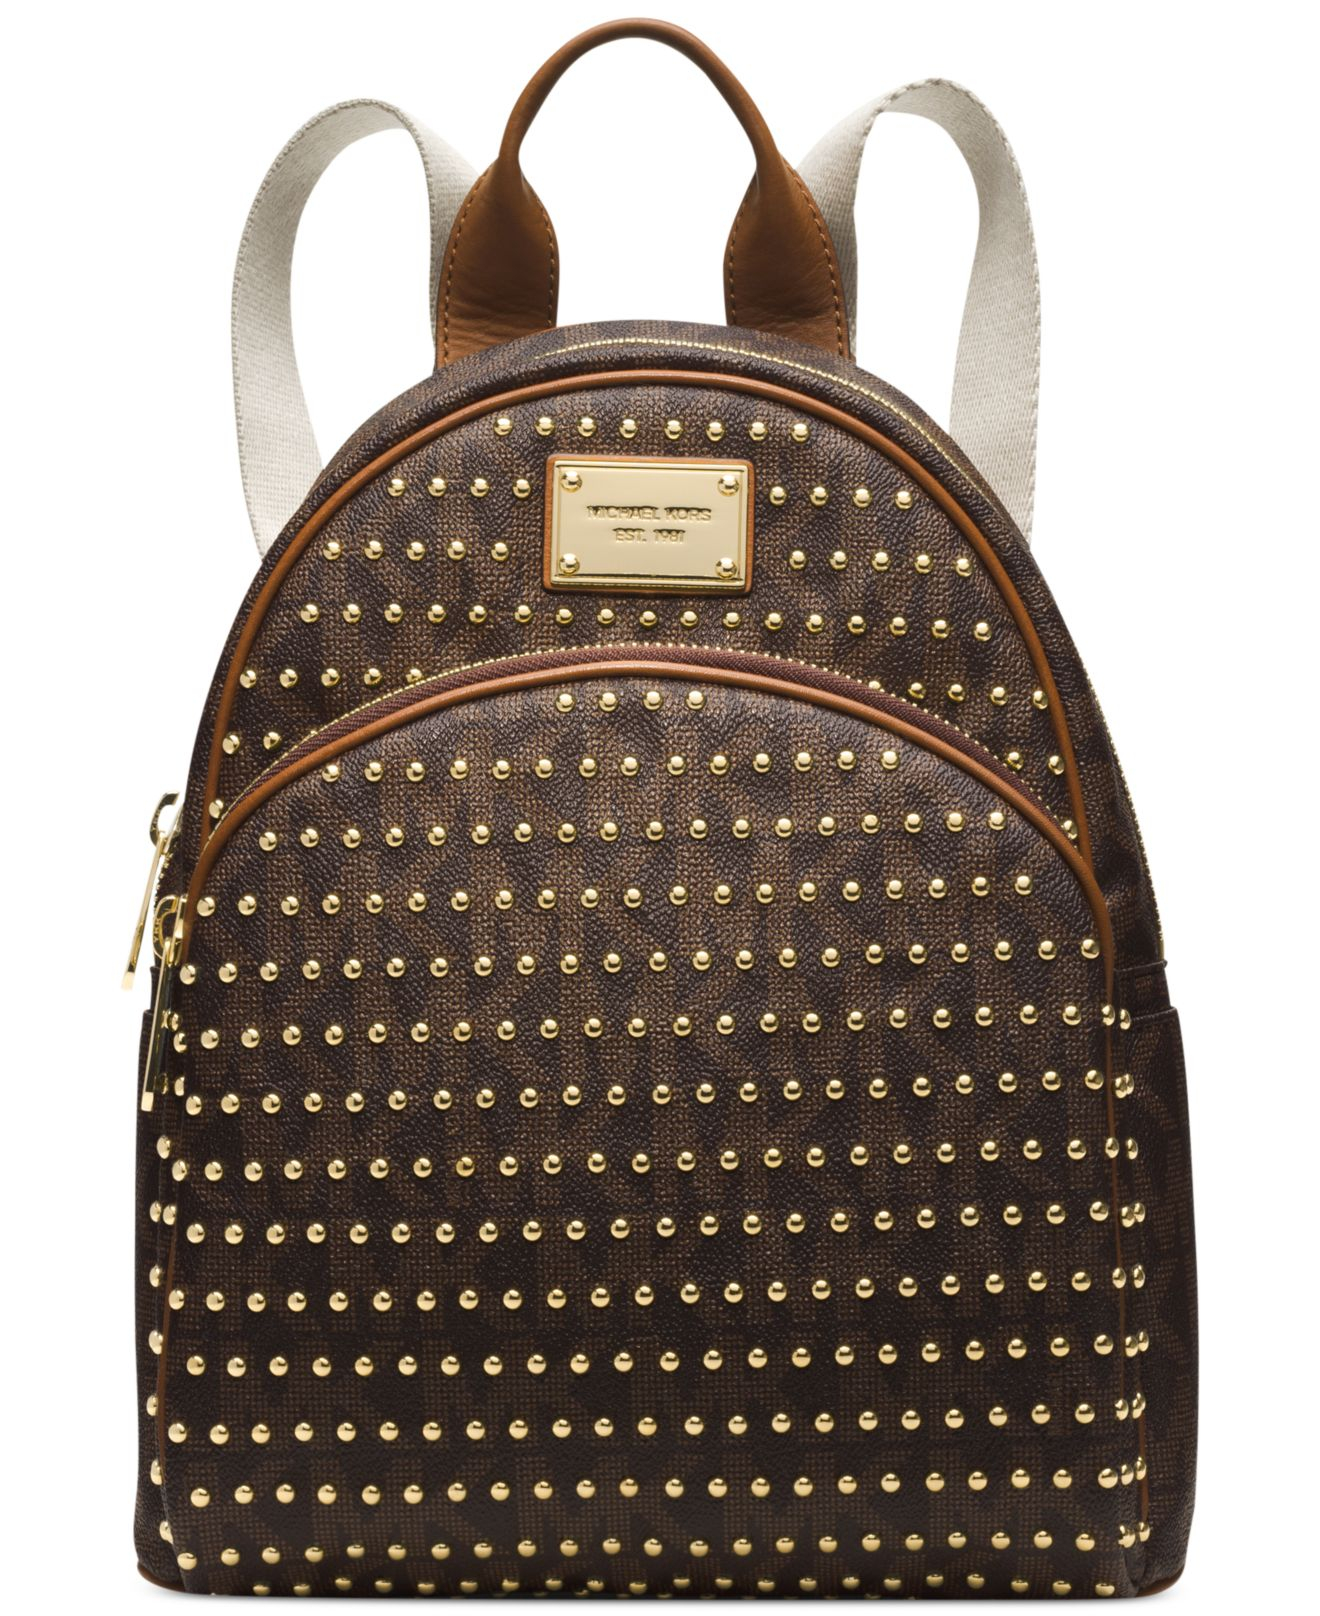 Lyst - Michael Kors Michael Jet Set Item Small Studded Backpack in Brown 7a174e9cafb68